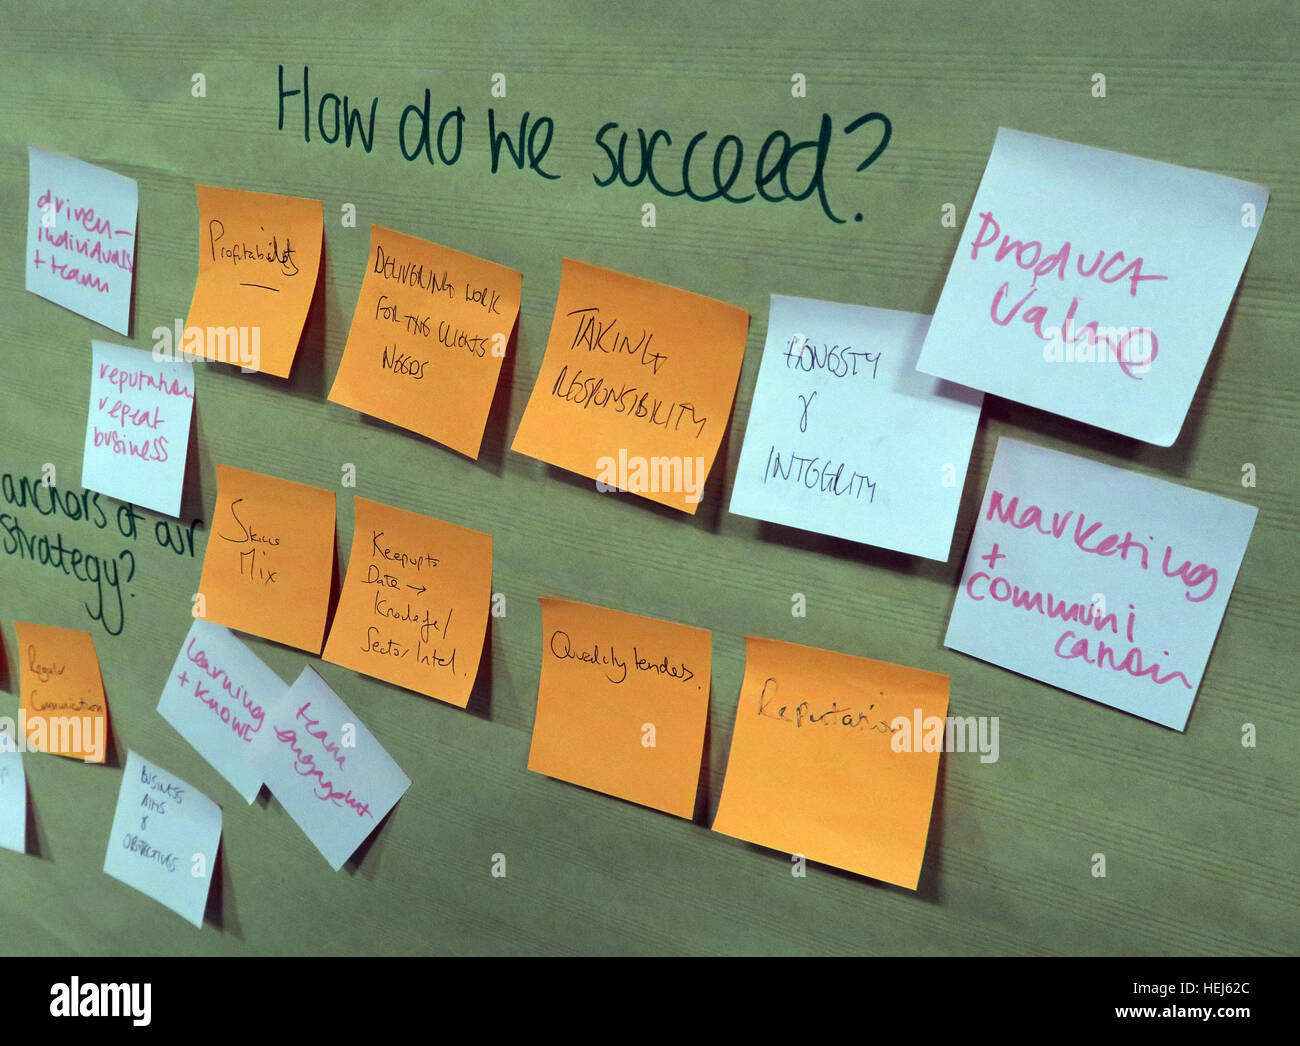 Strategy and Values brainstorming office training team building session - How Do We Succeed? - Stock Image